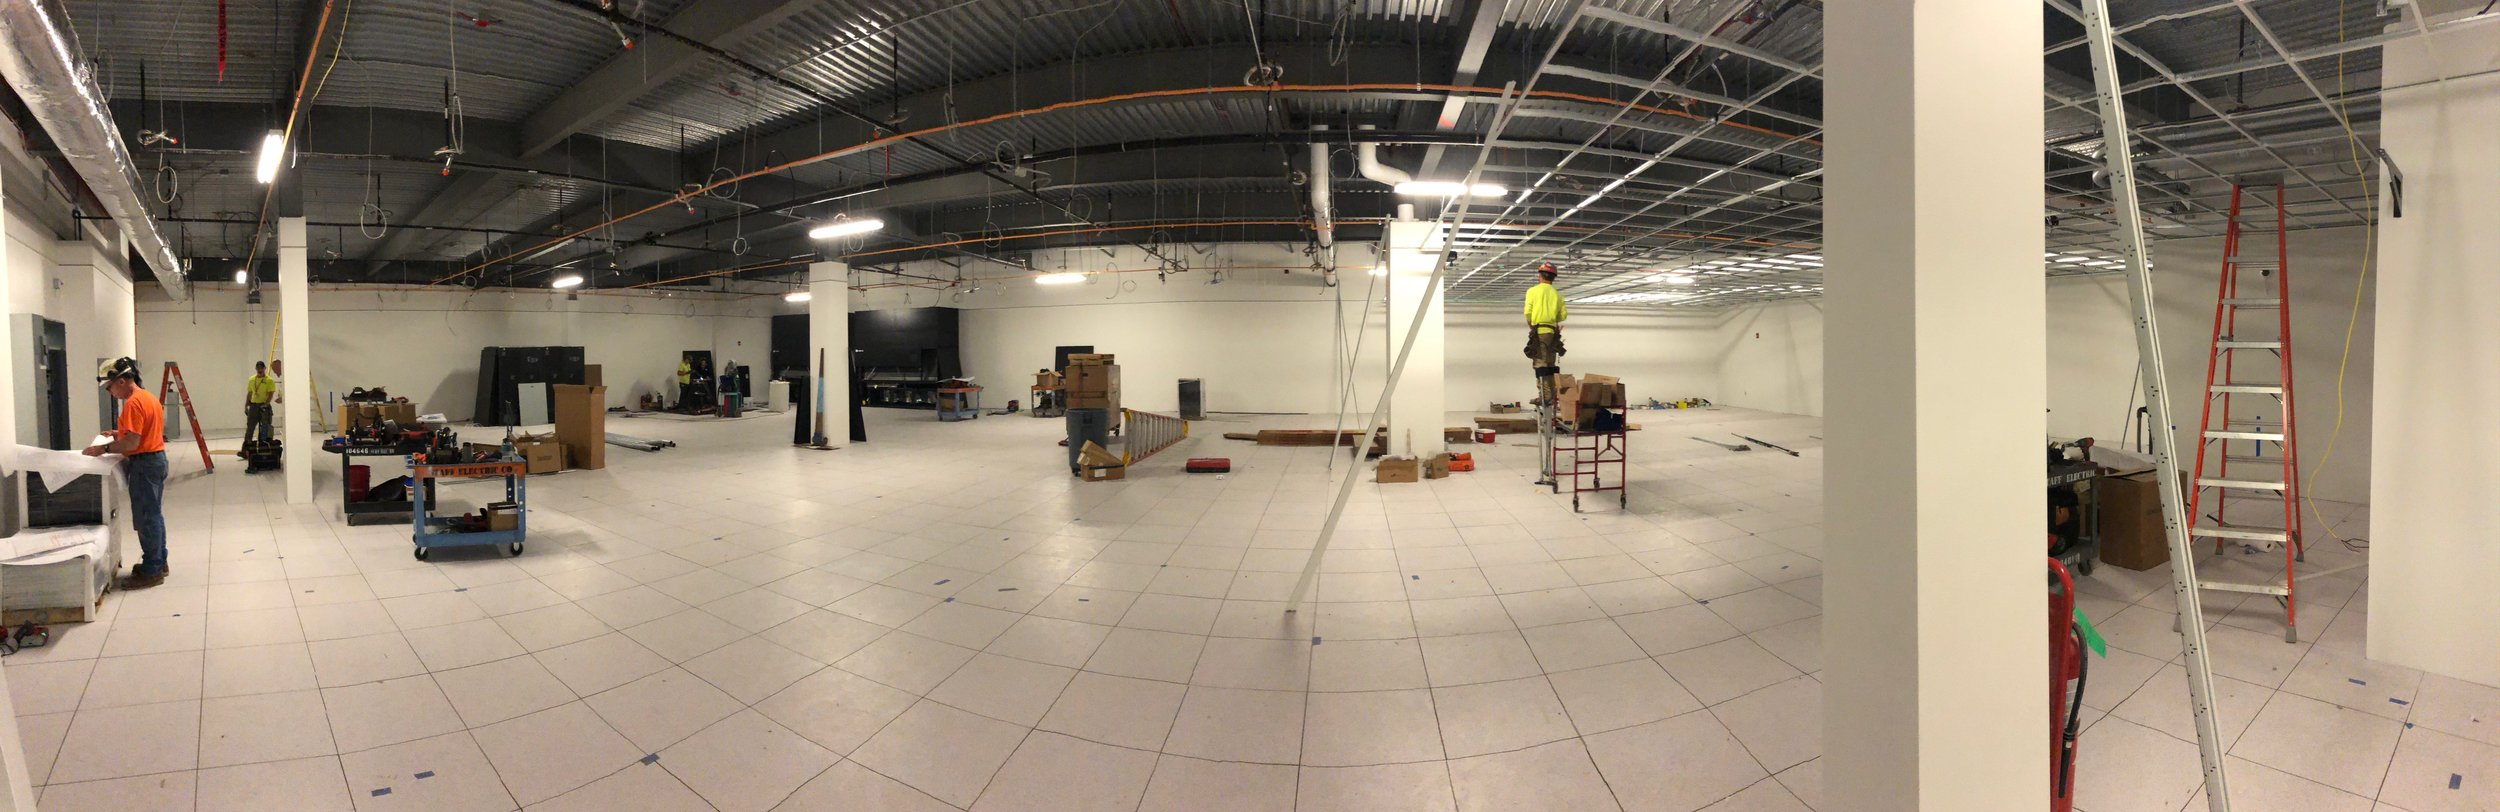 Week of June 17th - June 21st, 2019   Power supply/breaker boxes, uninterupted power supplys, cooling/air conditioning and ceiling grid being installed.